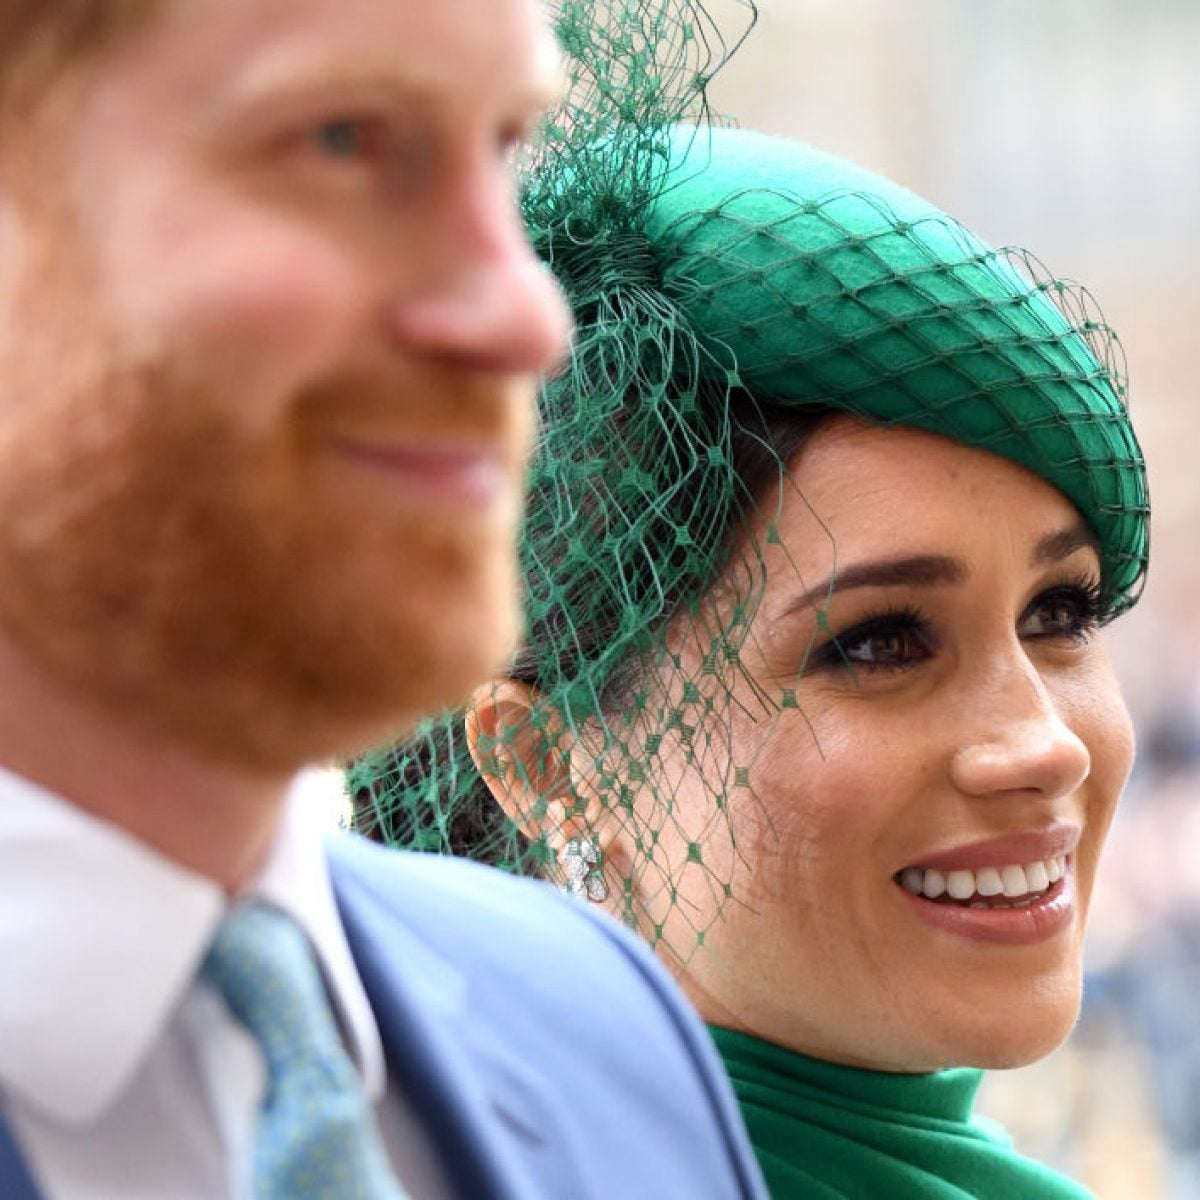 Prince Harry And Meghan Markle Announce Daughter's Birth, Name Her After Two Special Family Members